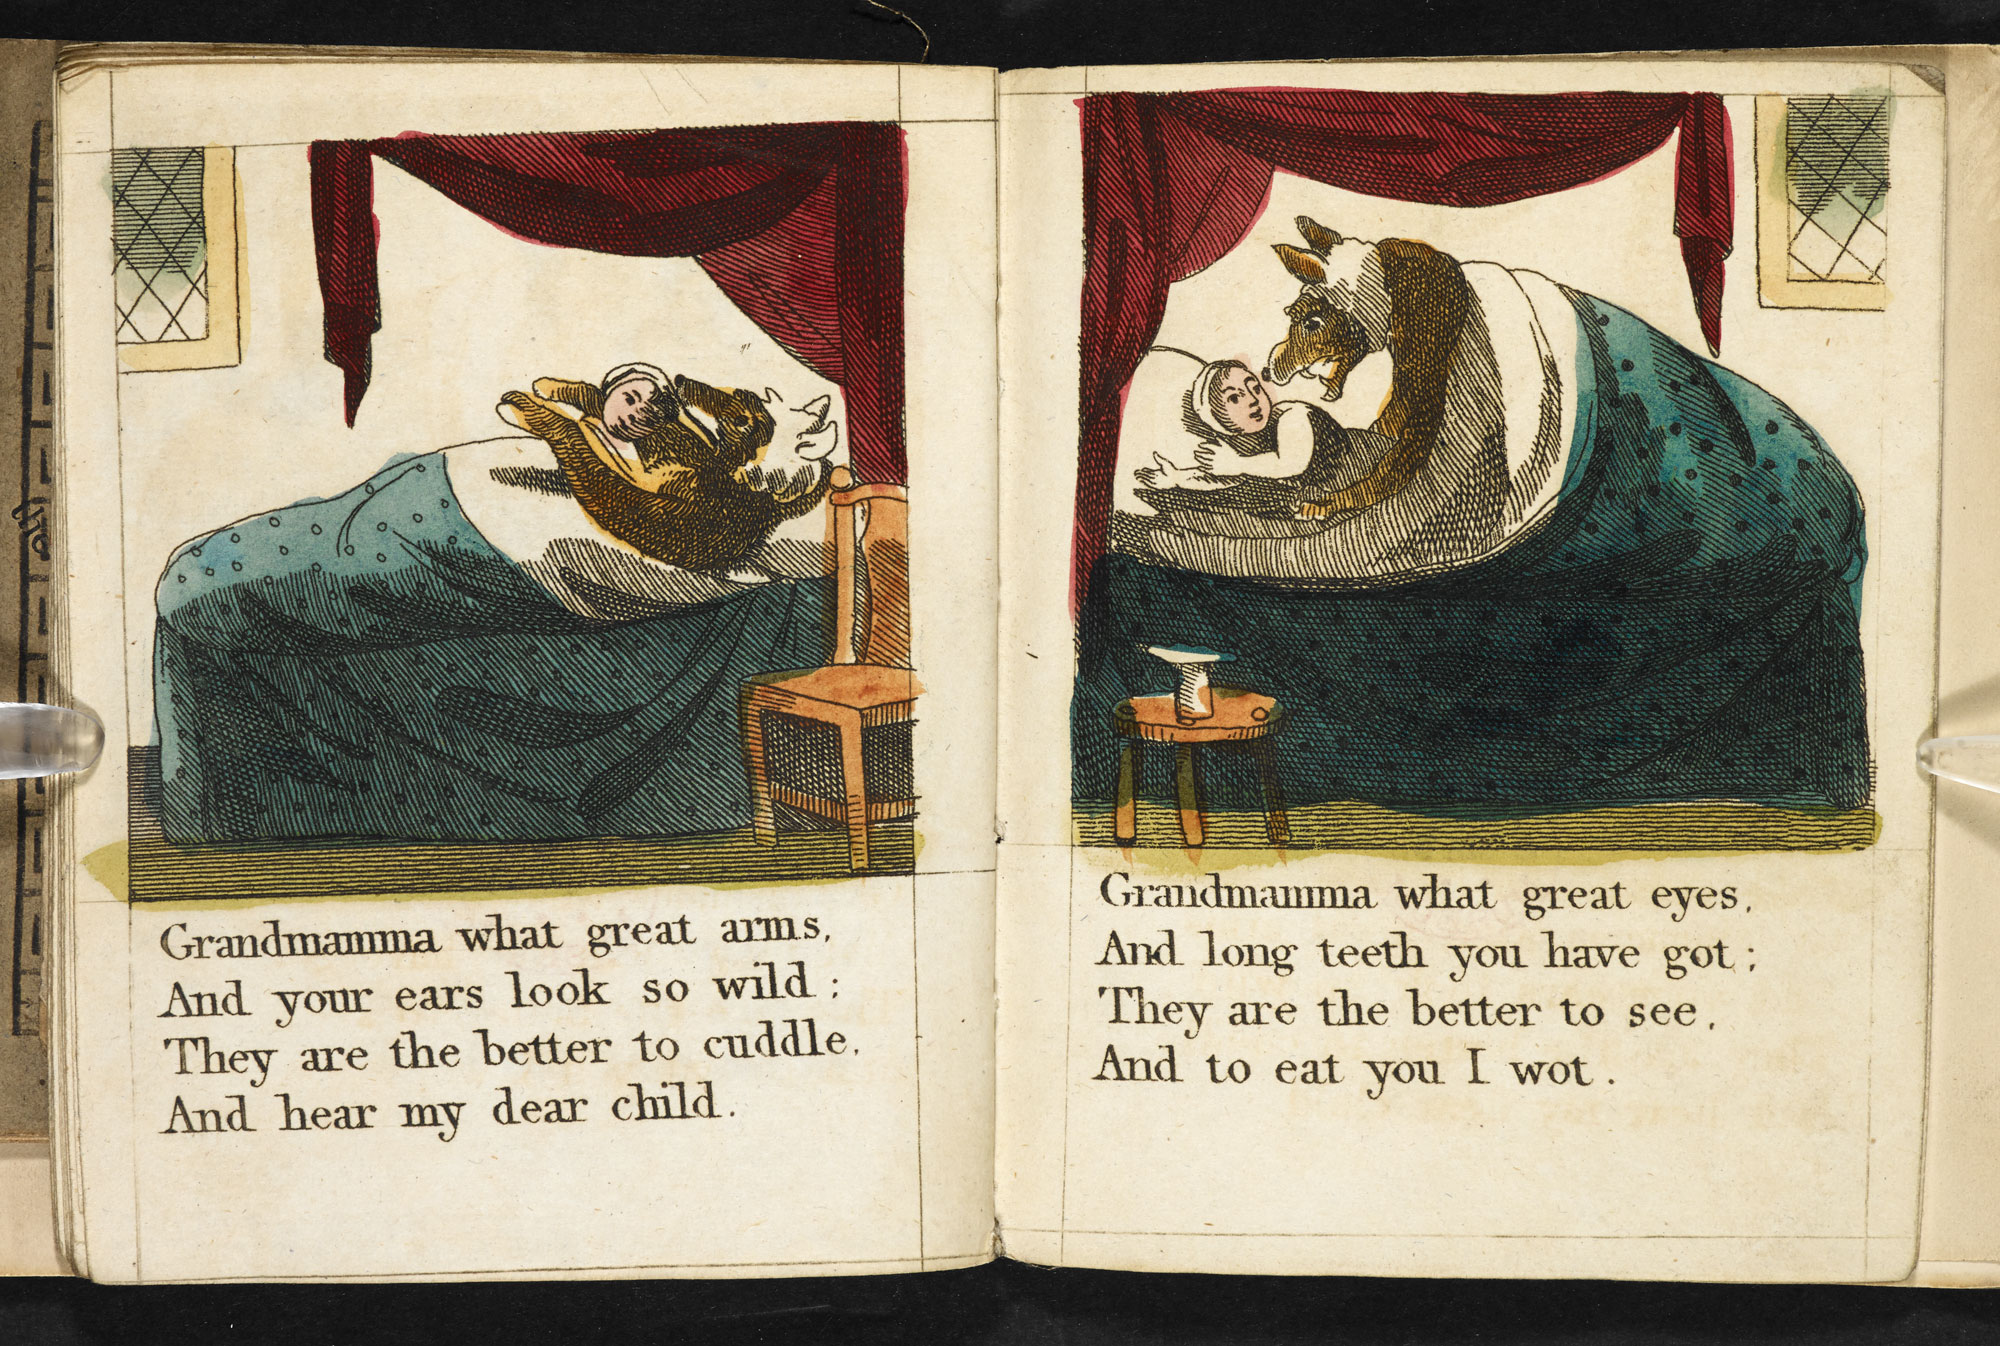 1810 edition of Little Red Riding Hood [page: 11-12]